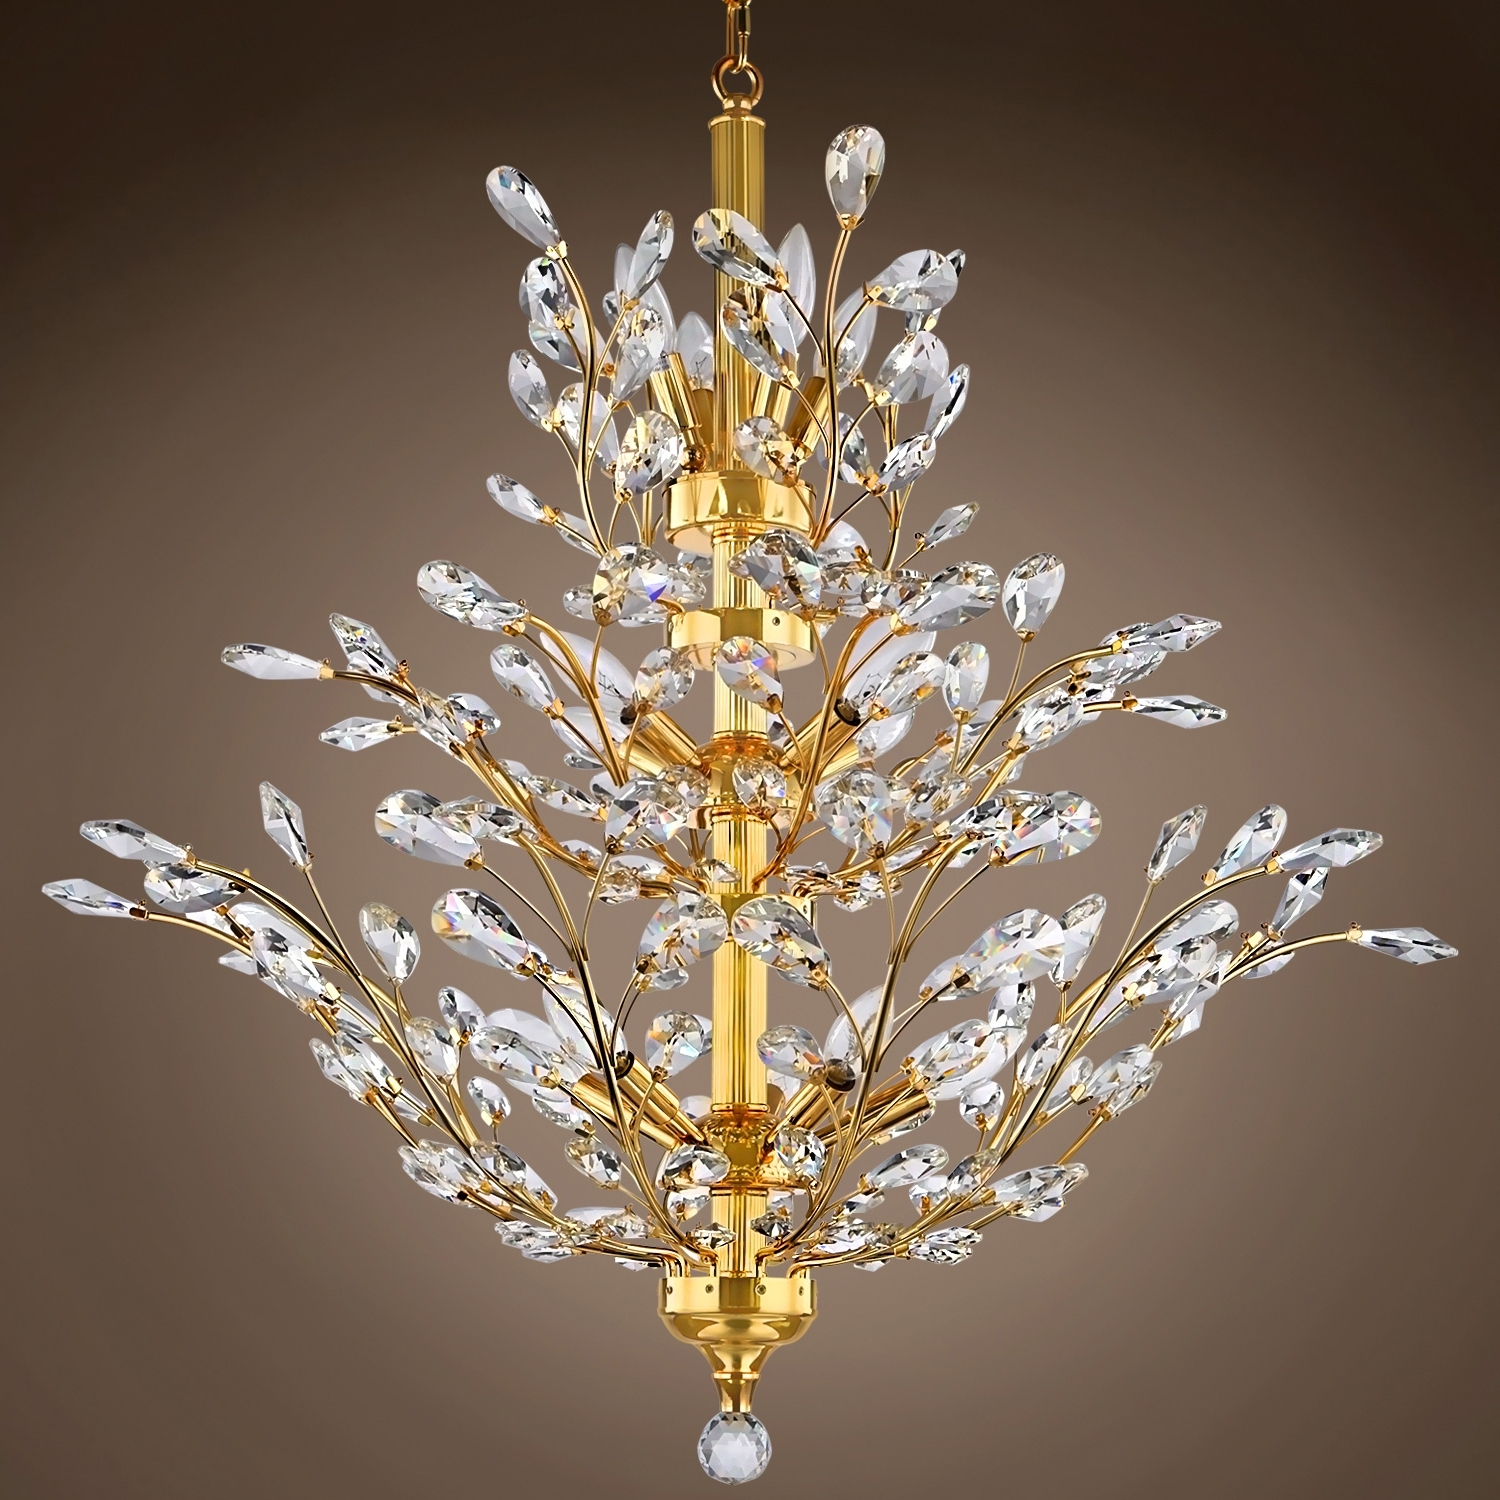 Branch Crystal Chandelier For Most Recent Joshua Marshal 700861 Branch Of Light 10 Light Gold Chandelier With (View 3 of 20)